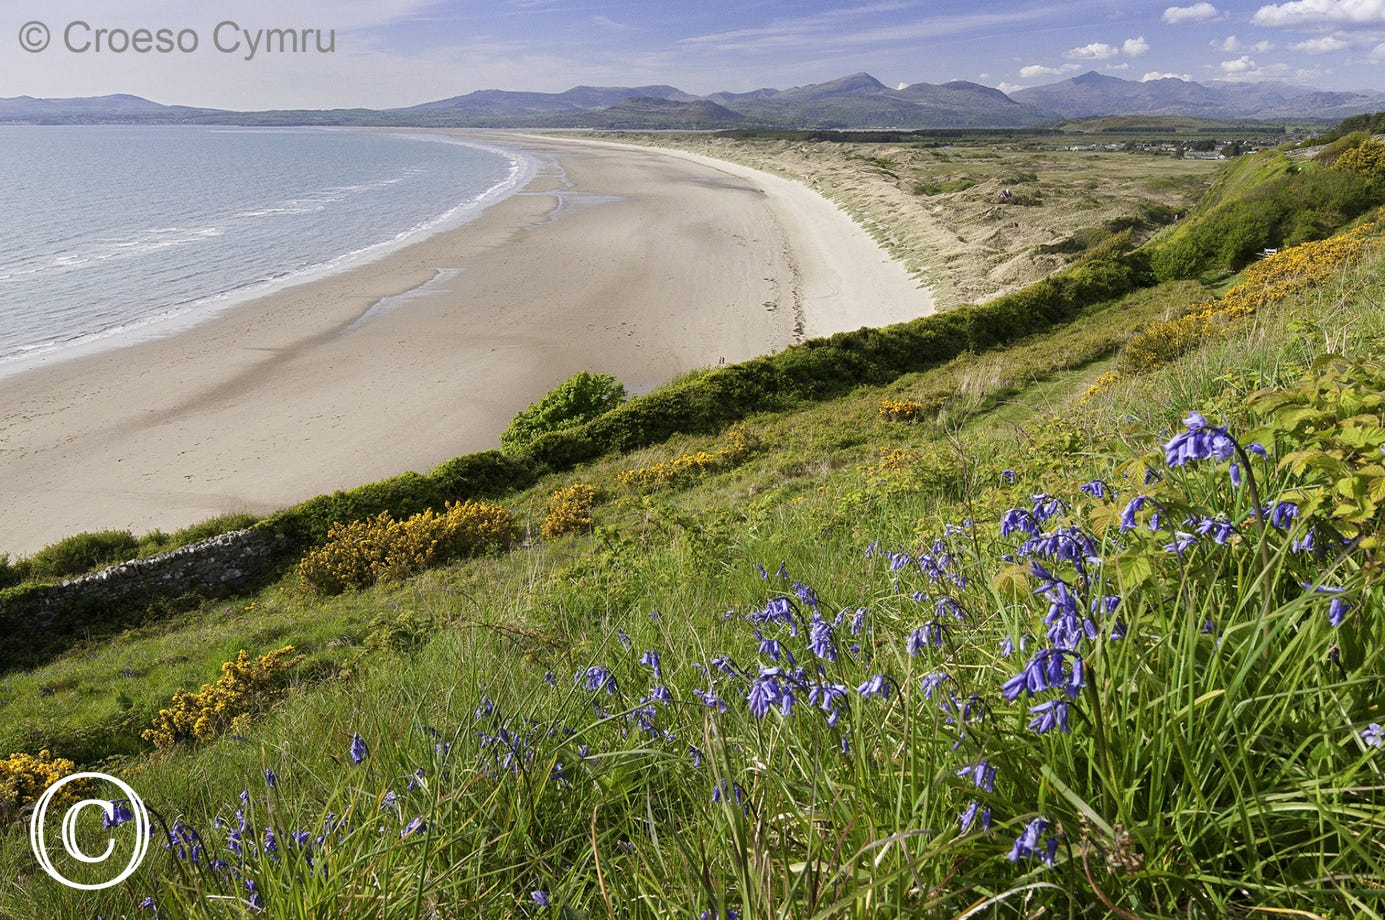 Harlech Beach - another blue flag beach a few miles north